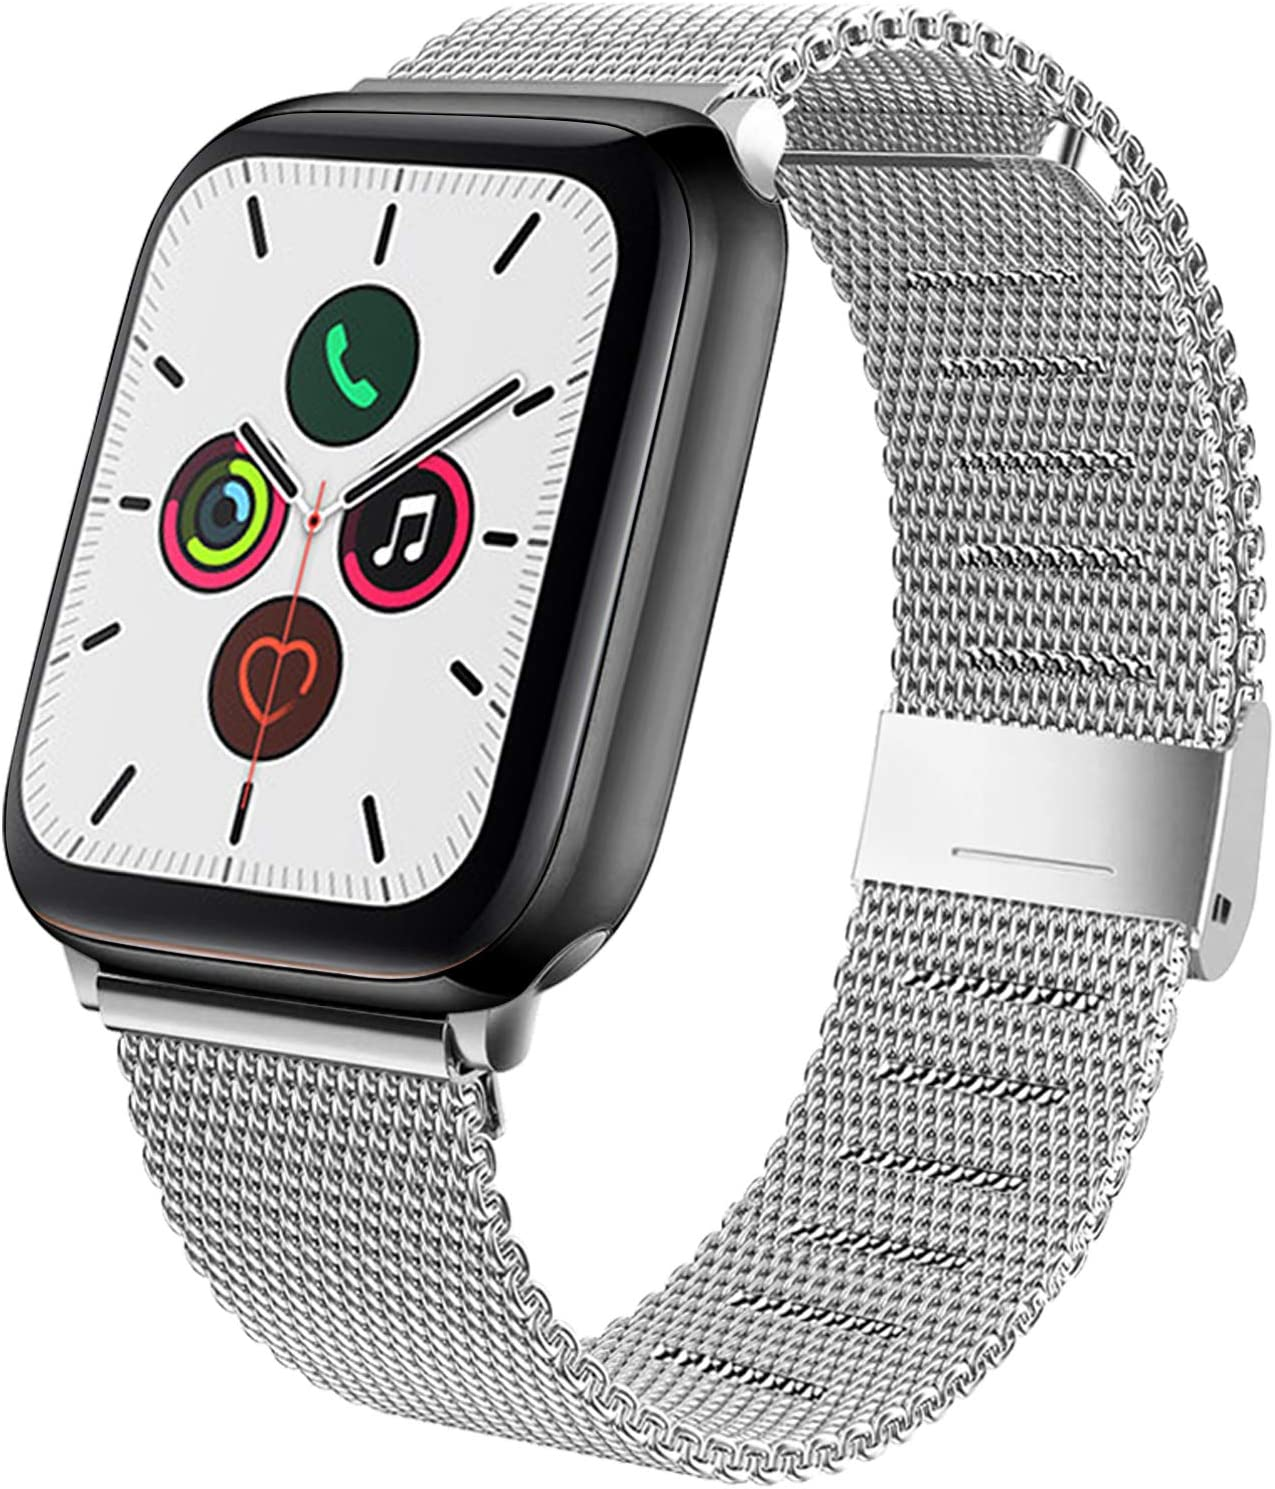 YILED Compatible with Apple Watch Band 44mm 42mm 40mm 38mm, Adjustable Stainless Steel Mesh Replacement Wristband Sport Loop Band for iWatch Series 5 4 3 2 1 (Silver, 38mm/40mm)